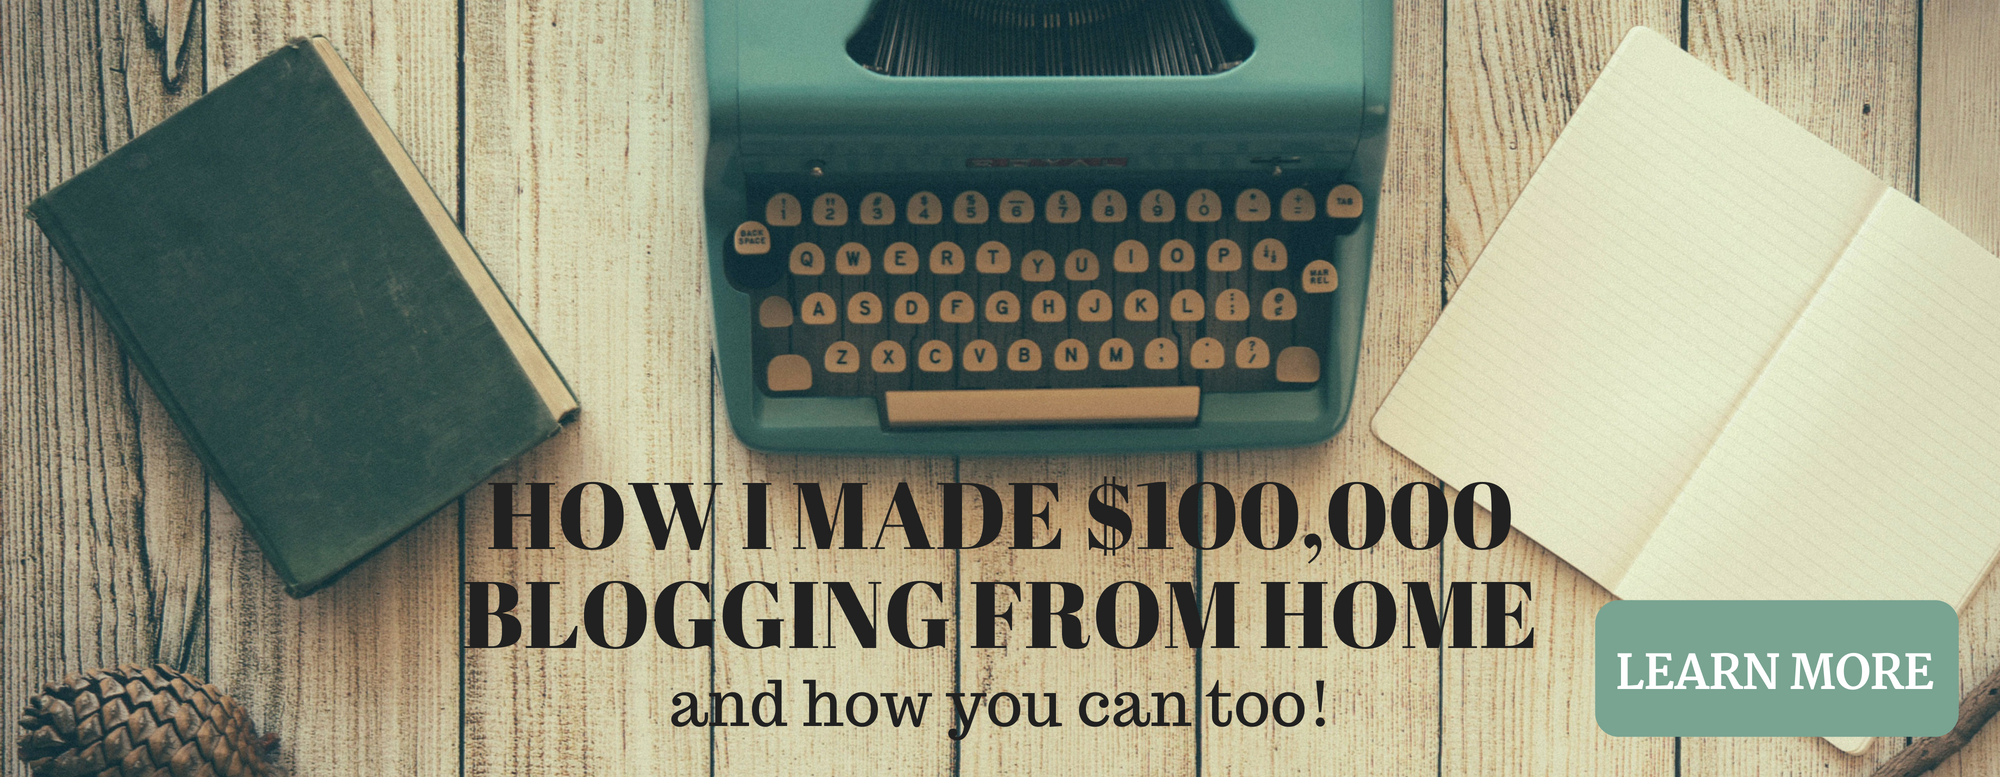 How To Make Money Online From Home Blogging About Stuff You Love And Know